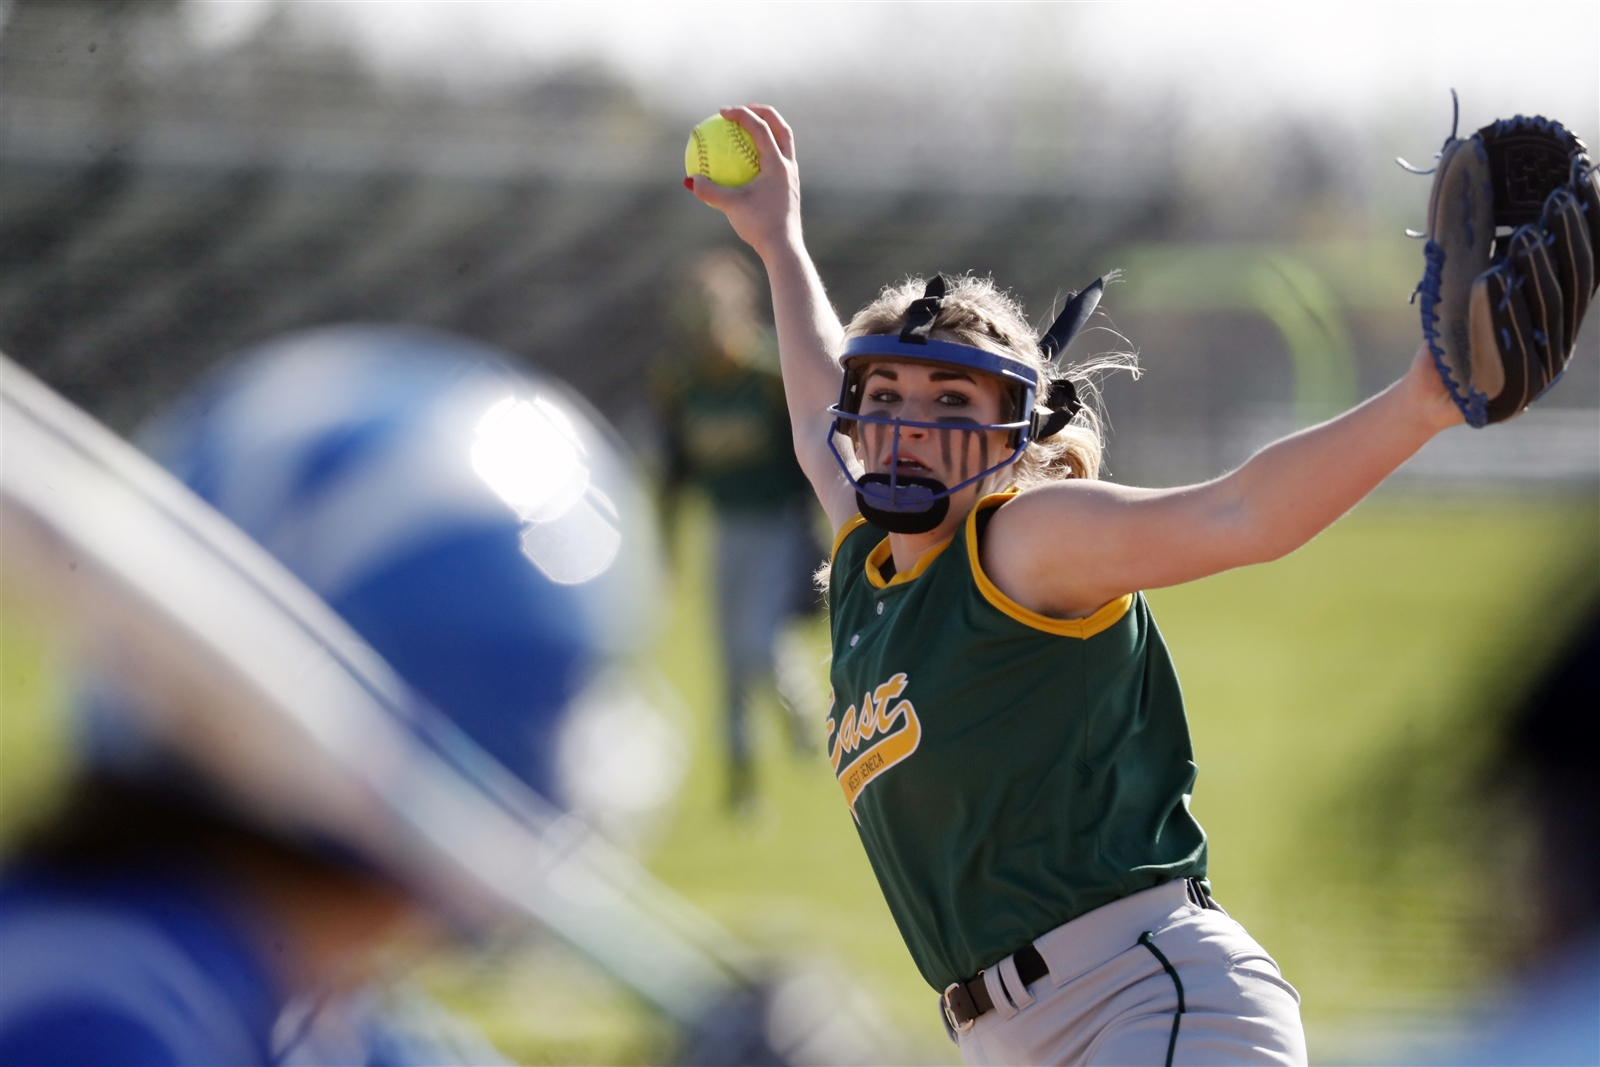 West Seneca East pitcher Anilese Kelly pitches to Williamsville South.